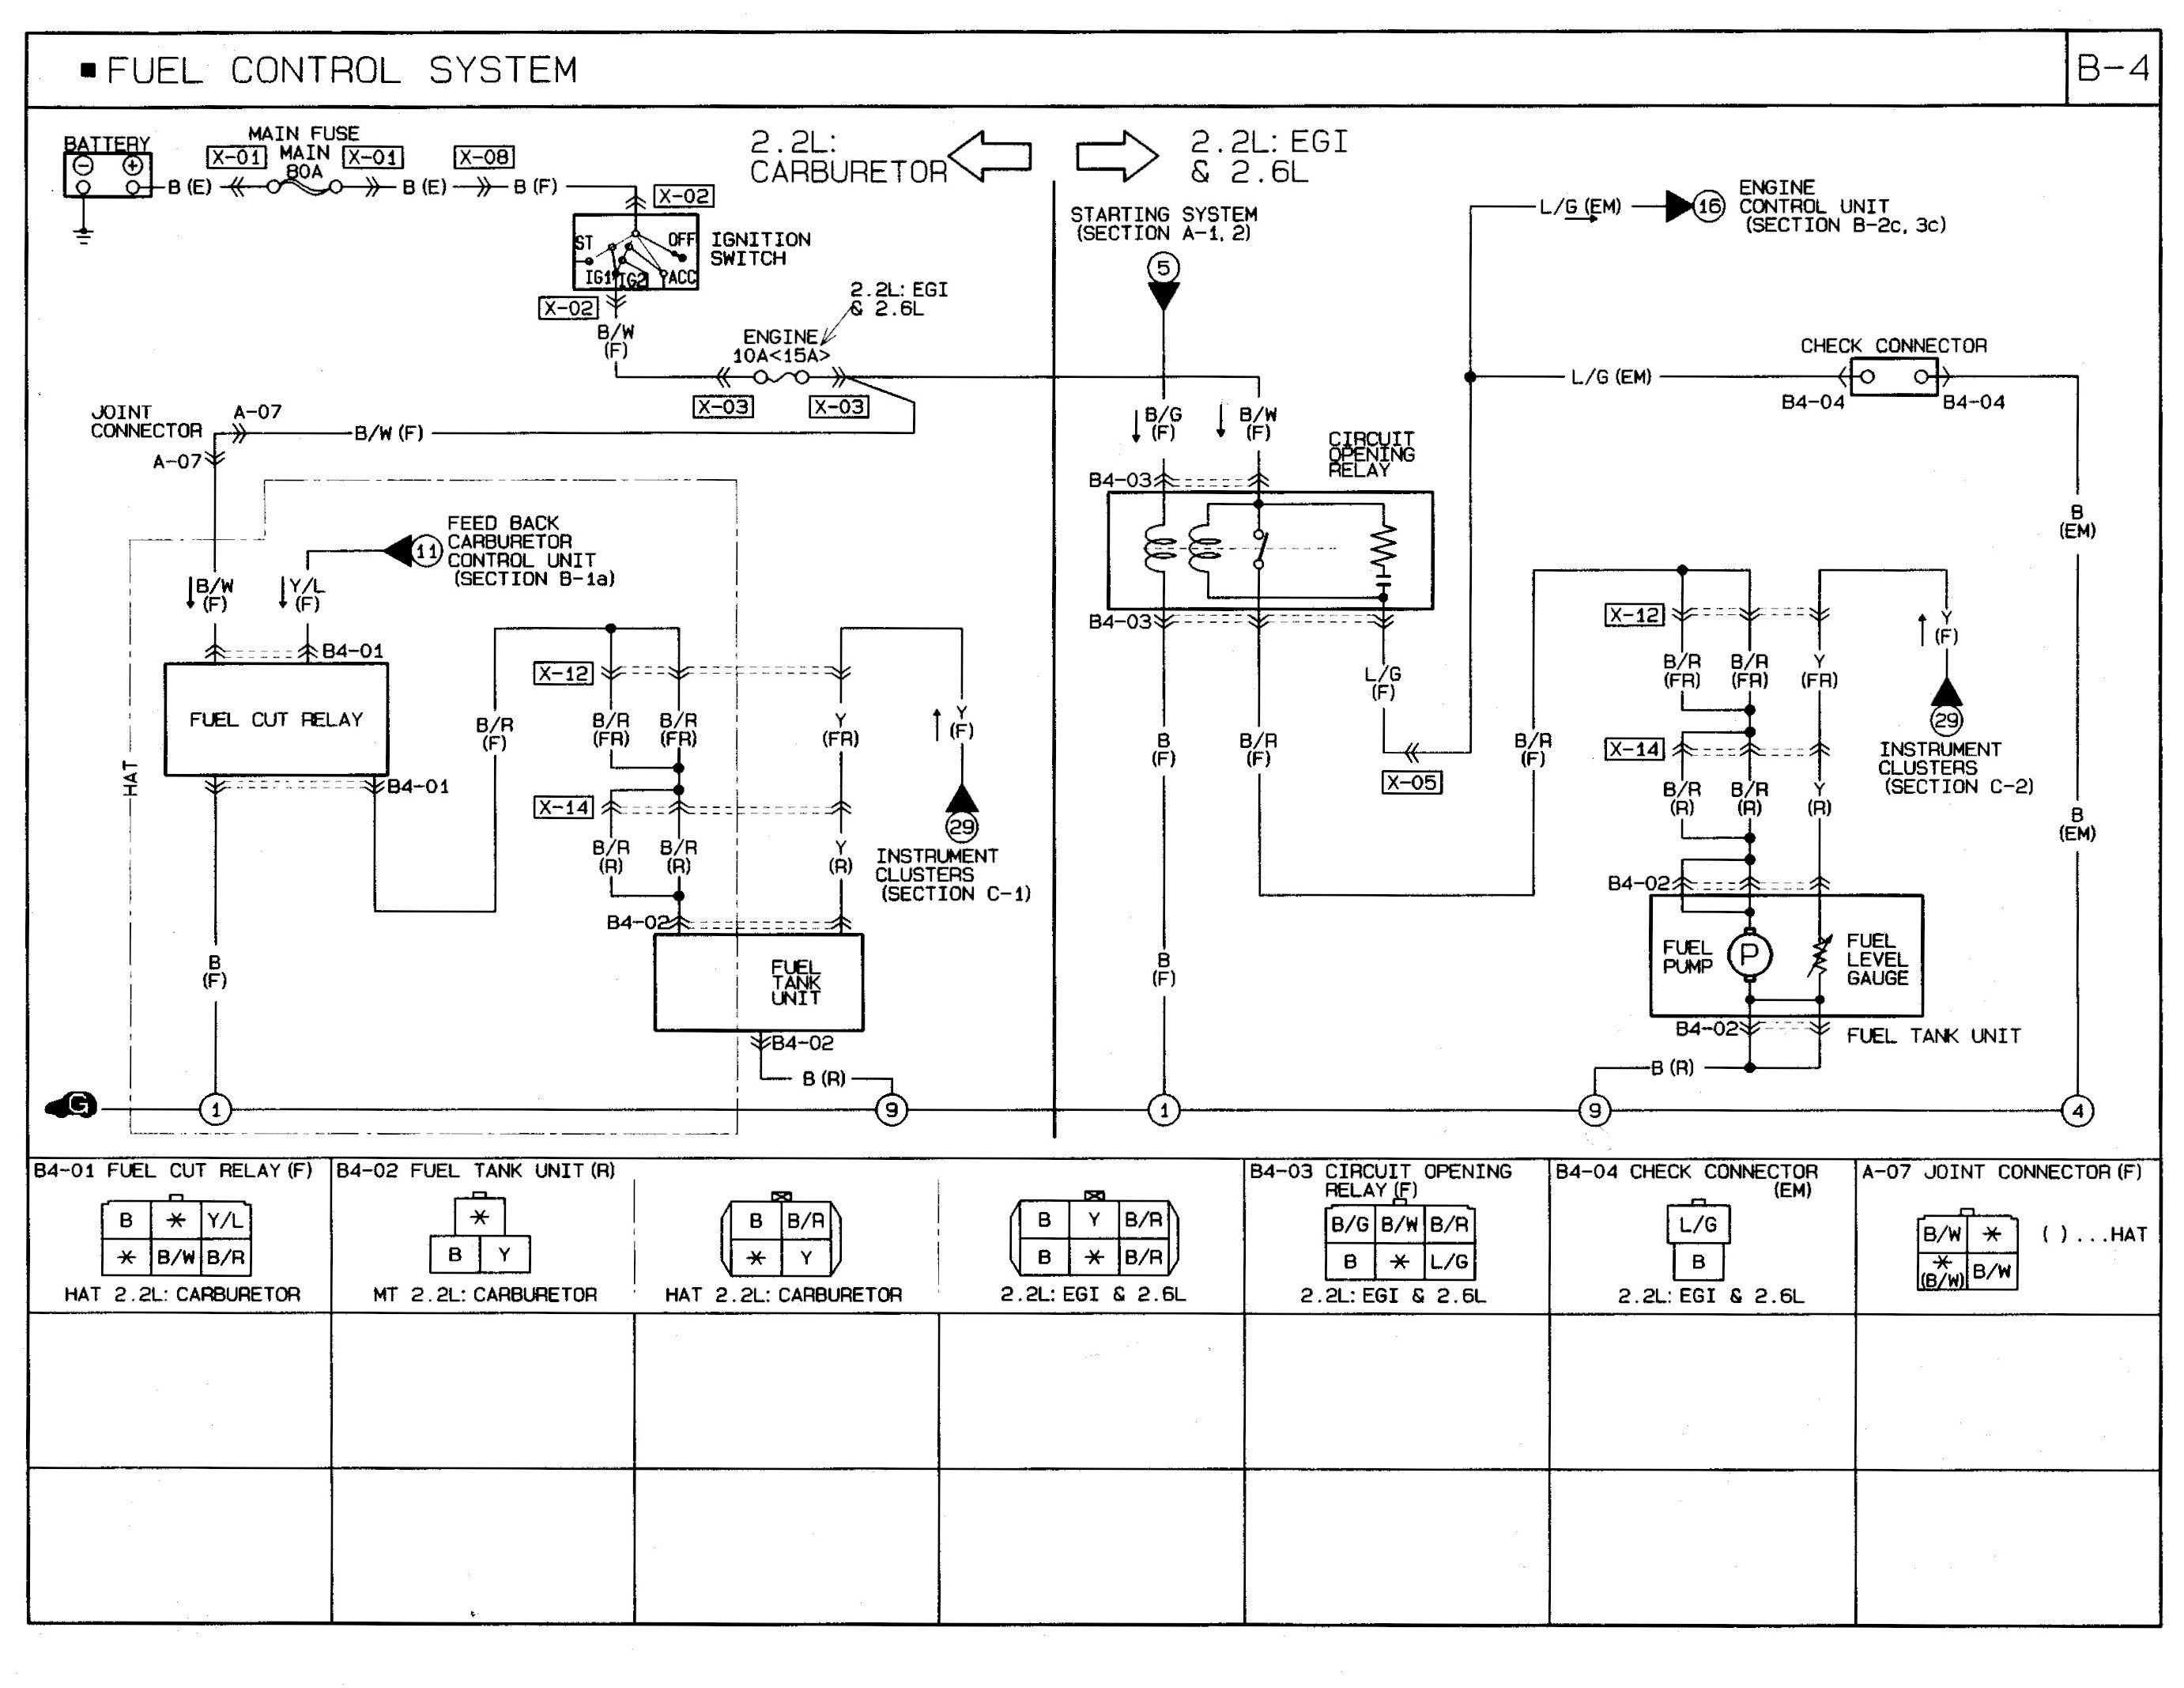 2003 mazda protege 5 engine compartment wiring schematic saferbrowser yahoo image search results [ 2763 x 2135 Pixel ]